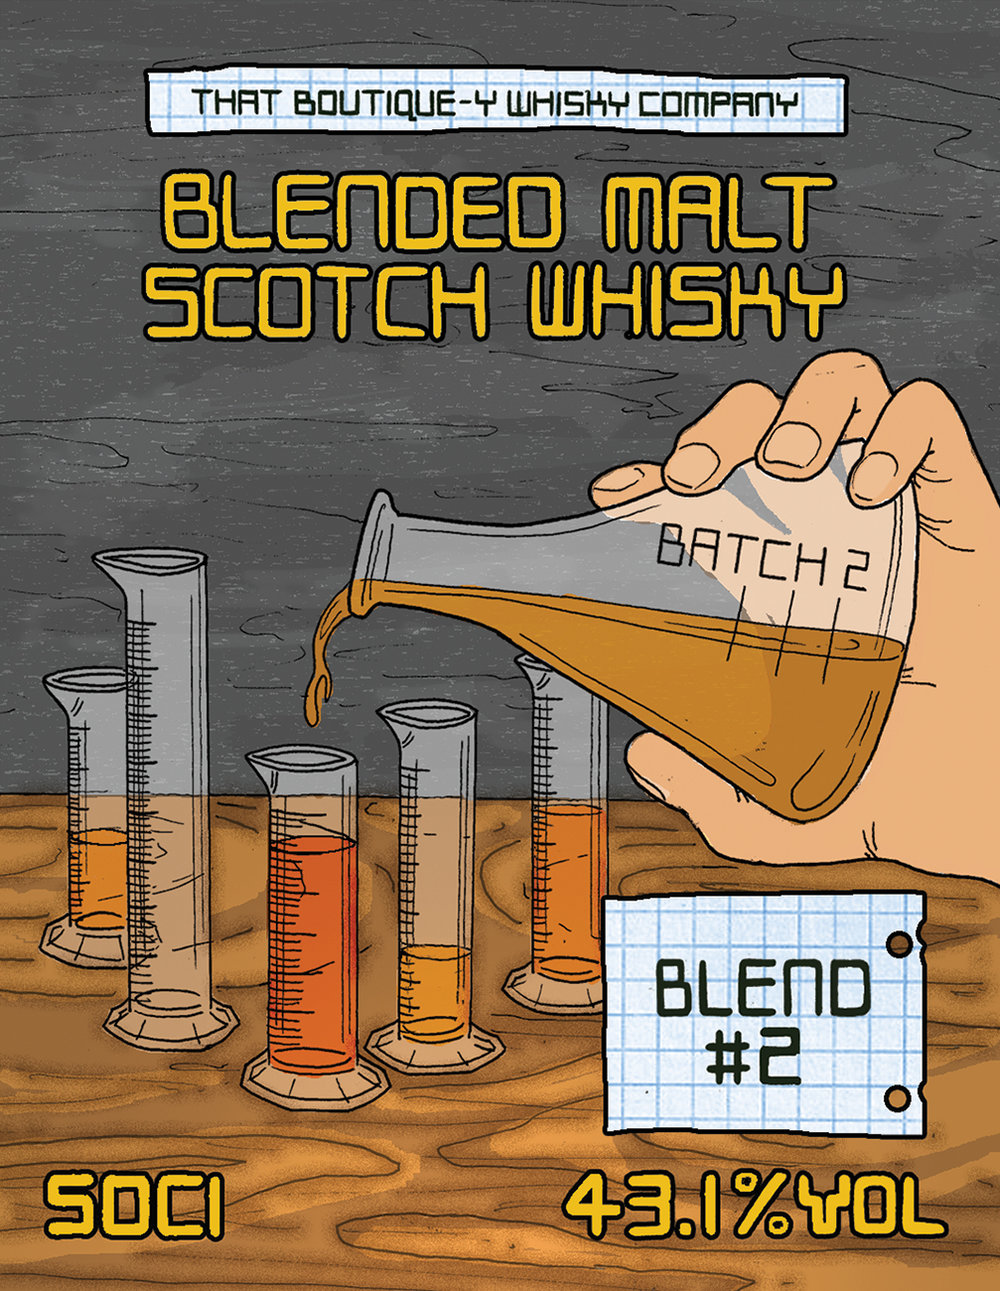 Blended Malt Scotch Whisky 2 B2.jpg